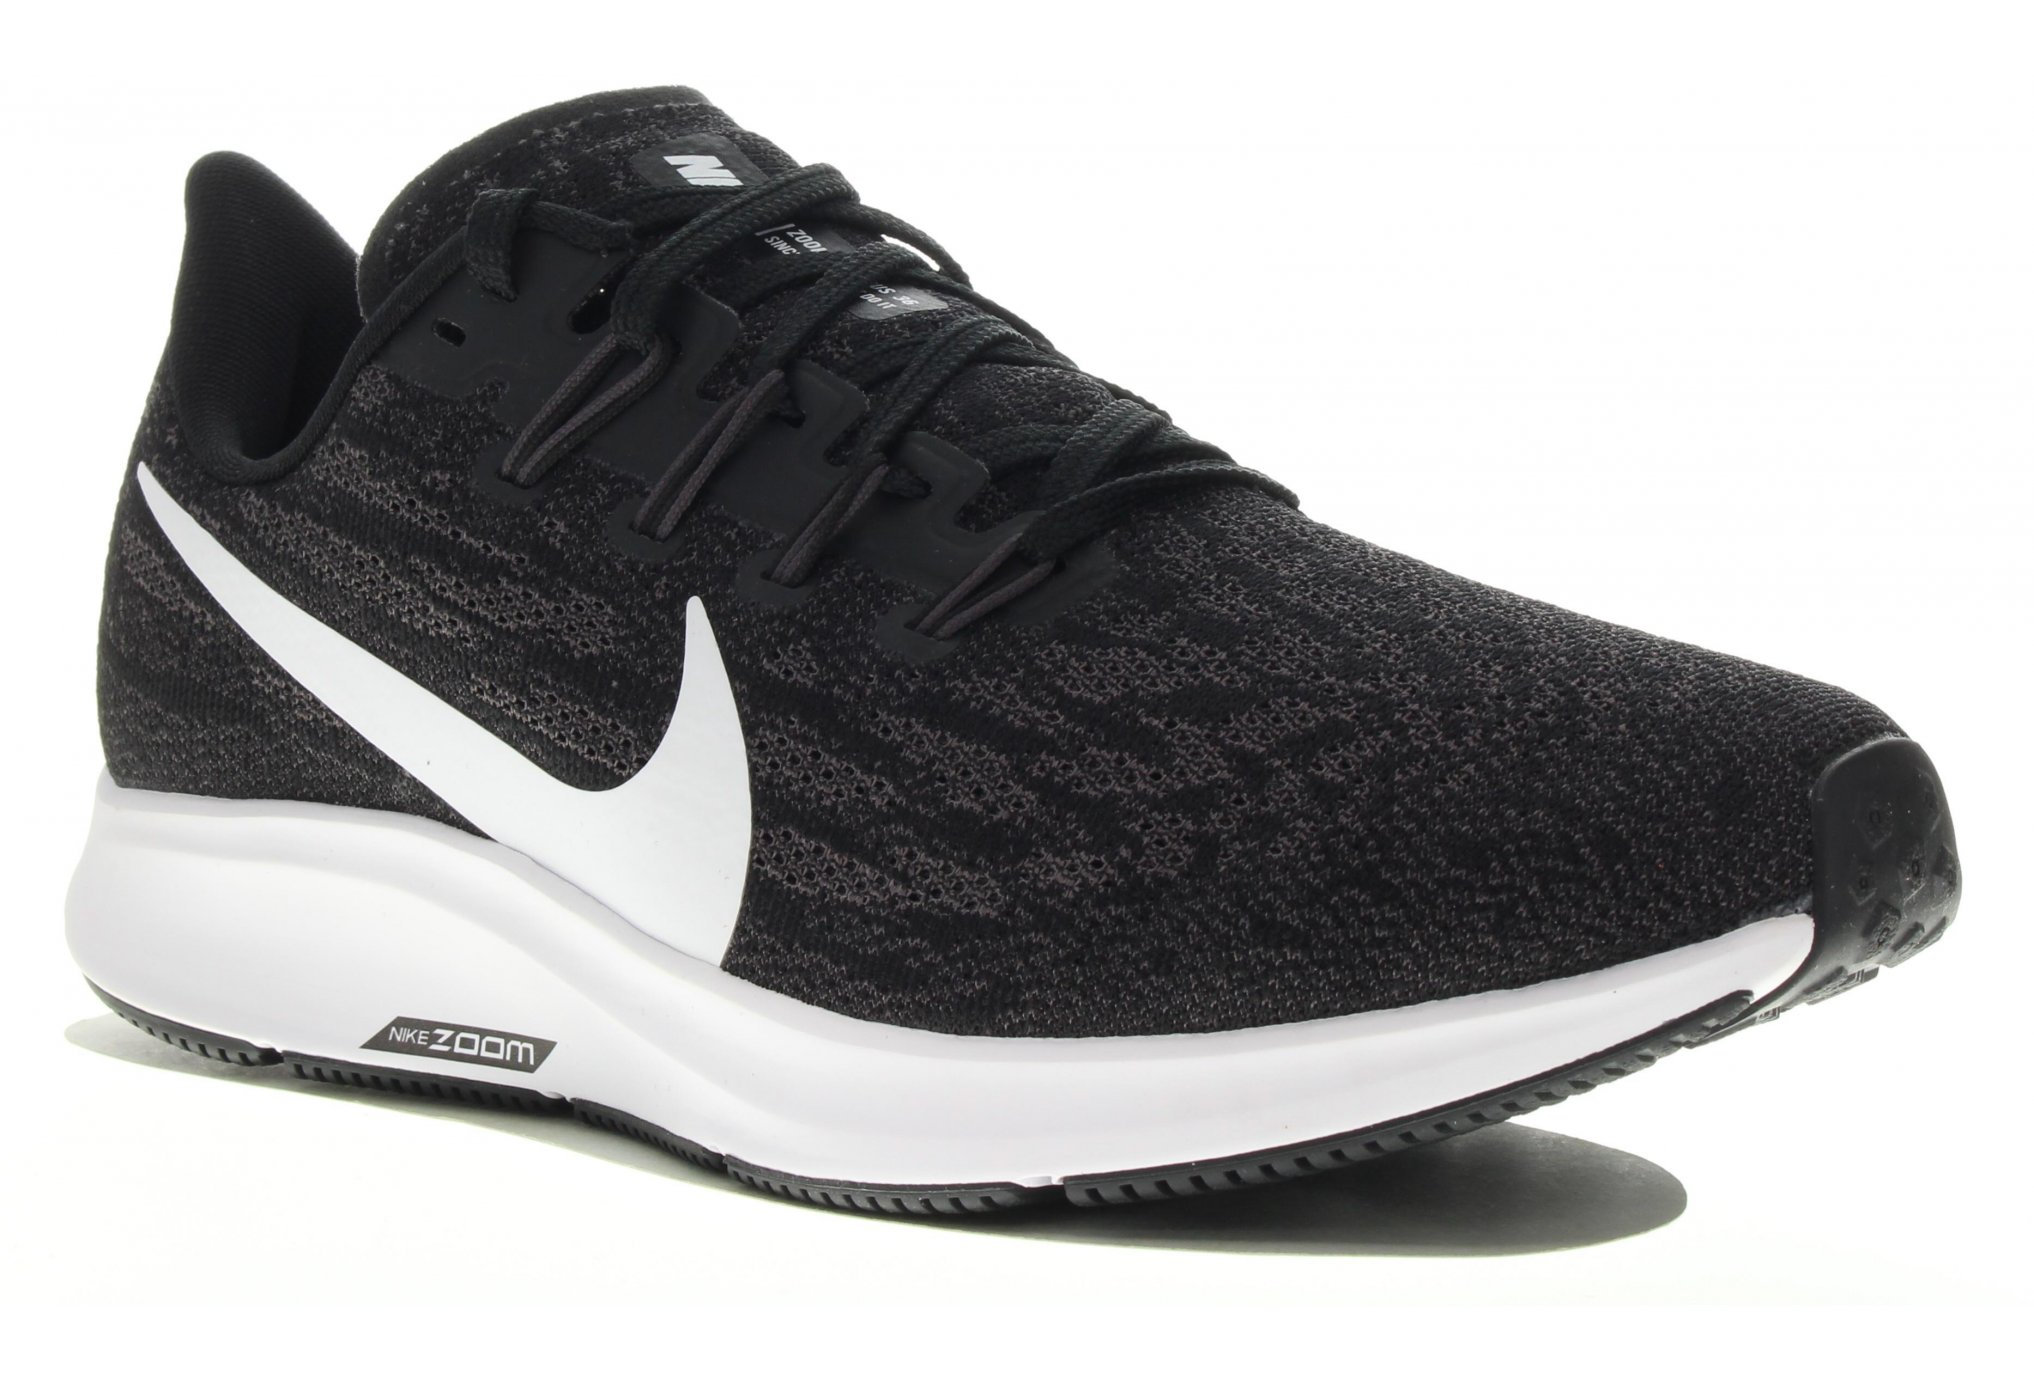 Nike Air Zoom Pegasus 36 Wide